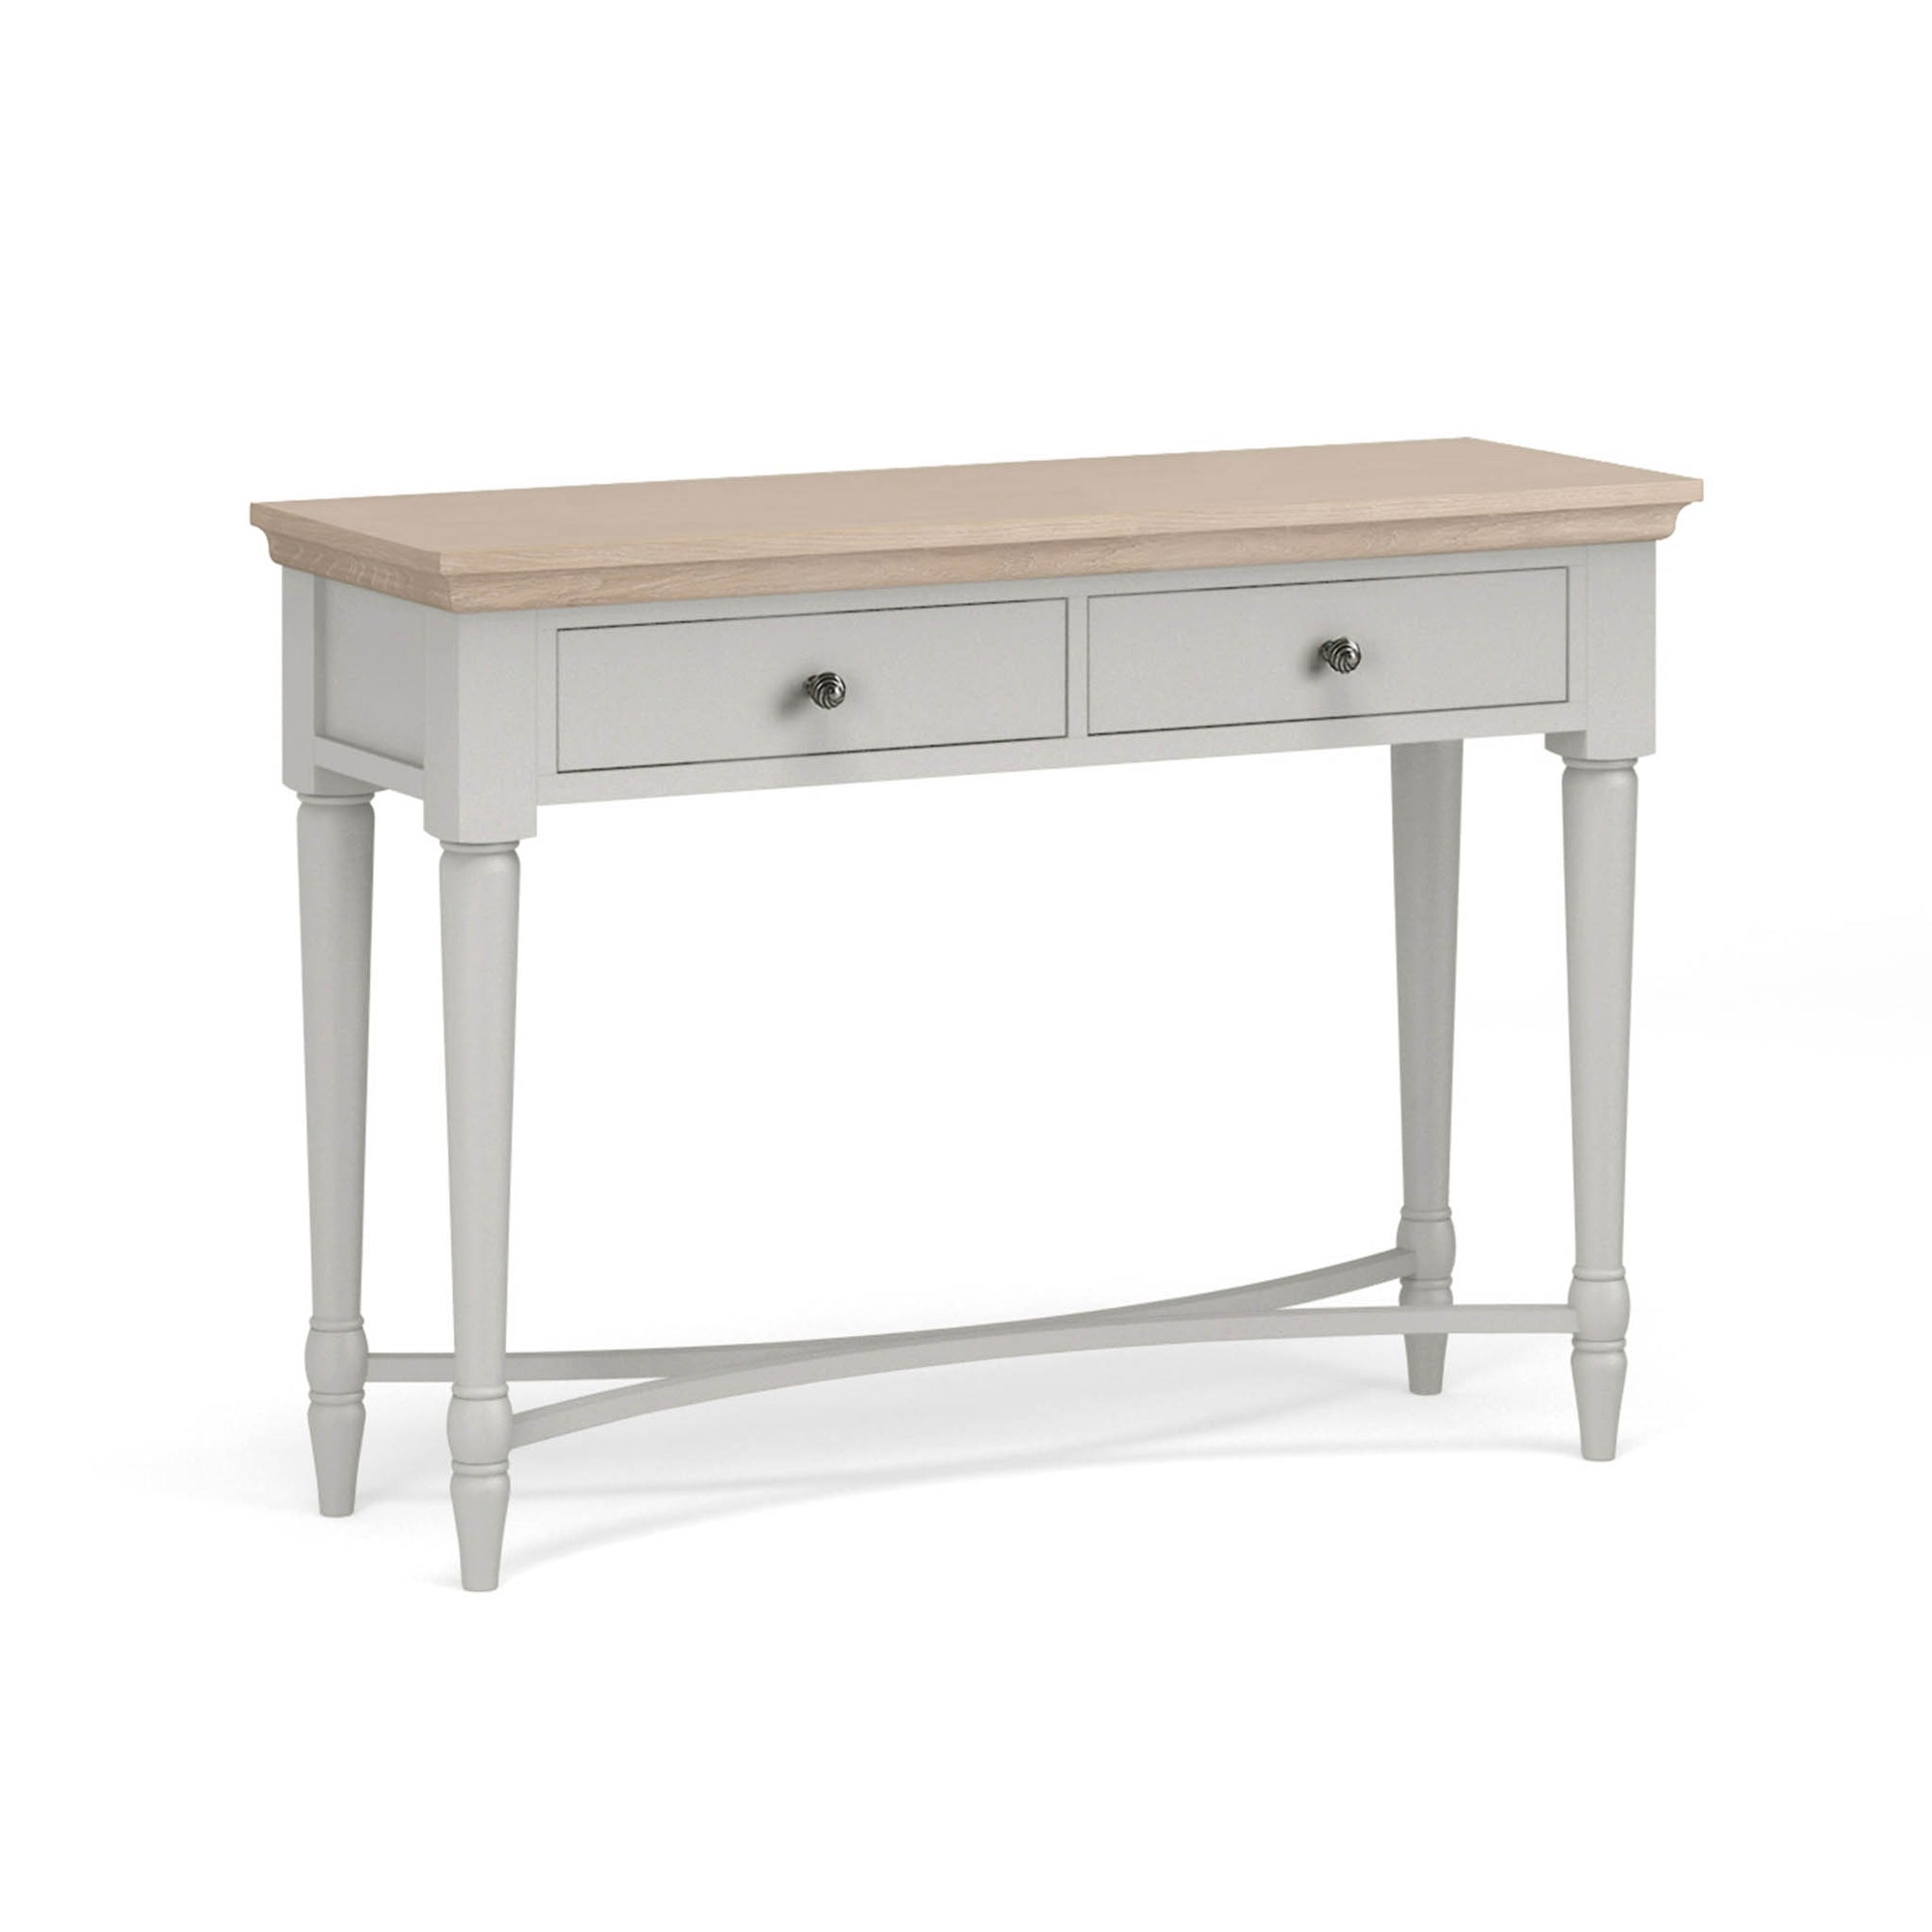 Melrose Grey Console Table from Roseland Furniture